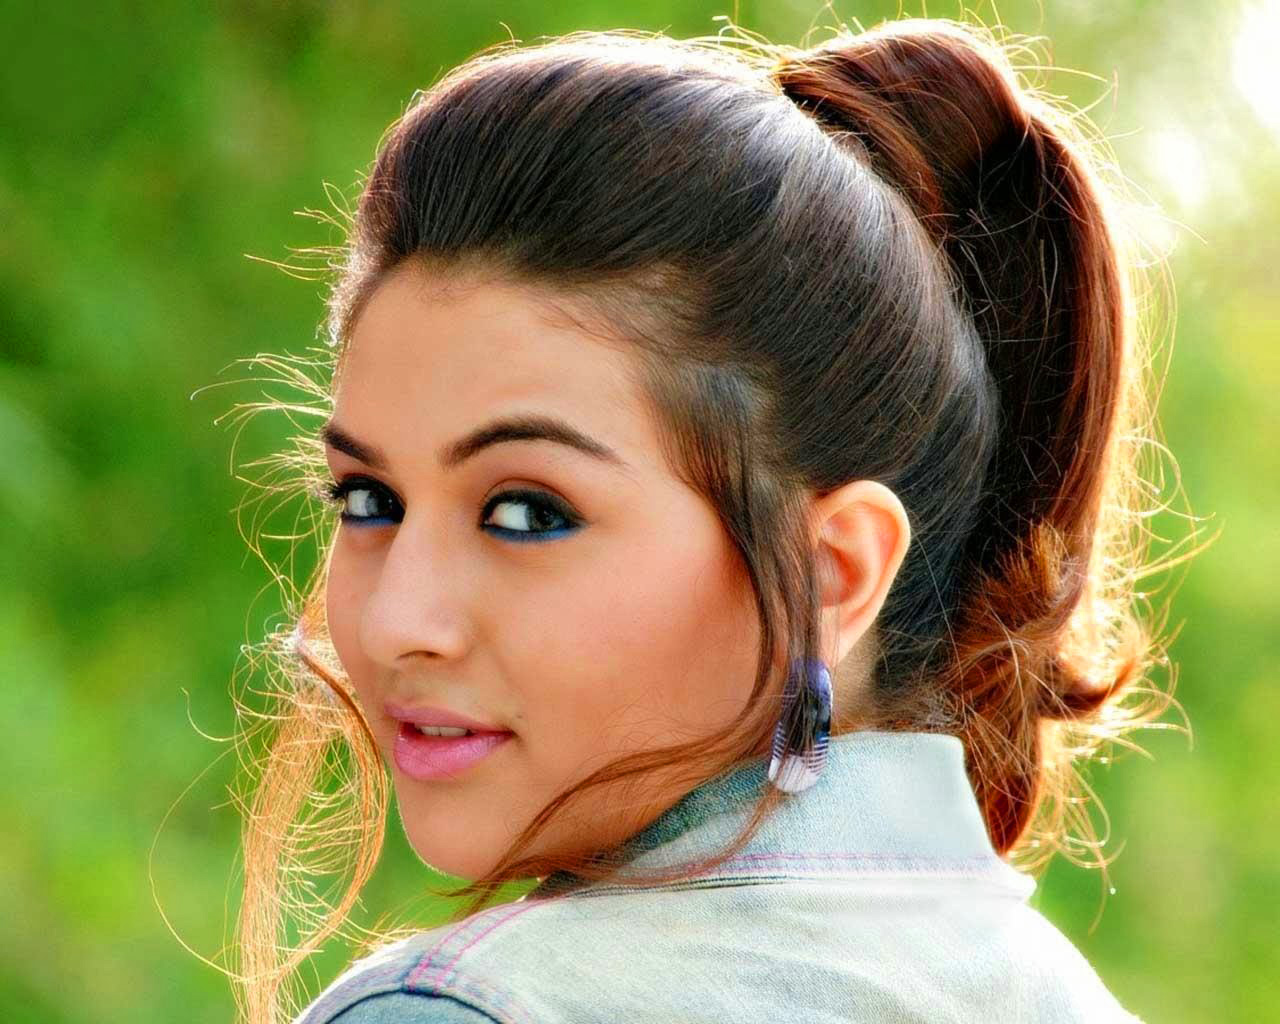 South Actress Wallpaper Pictures Images Download